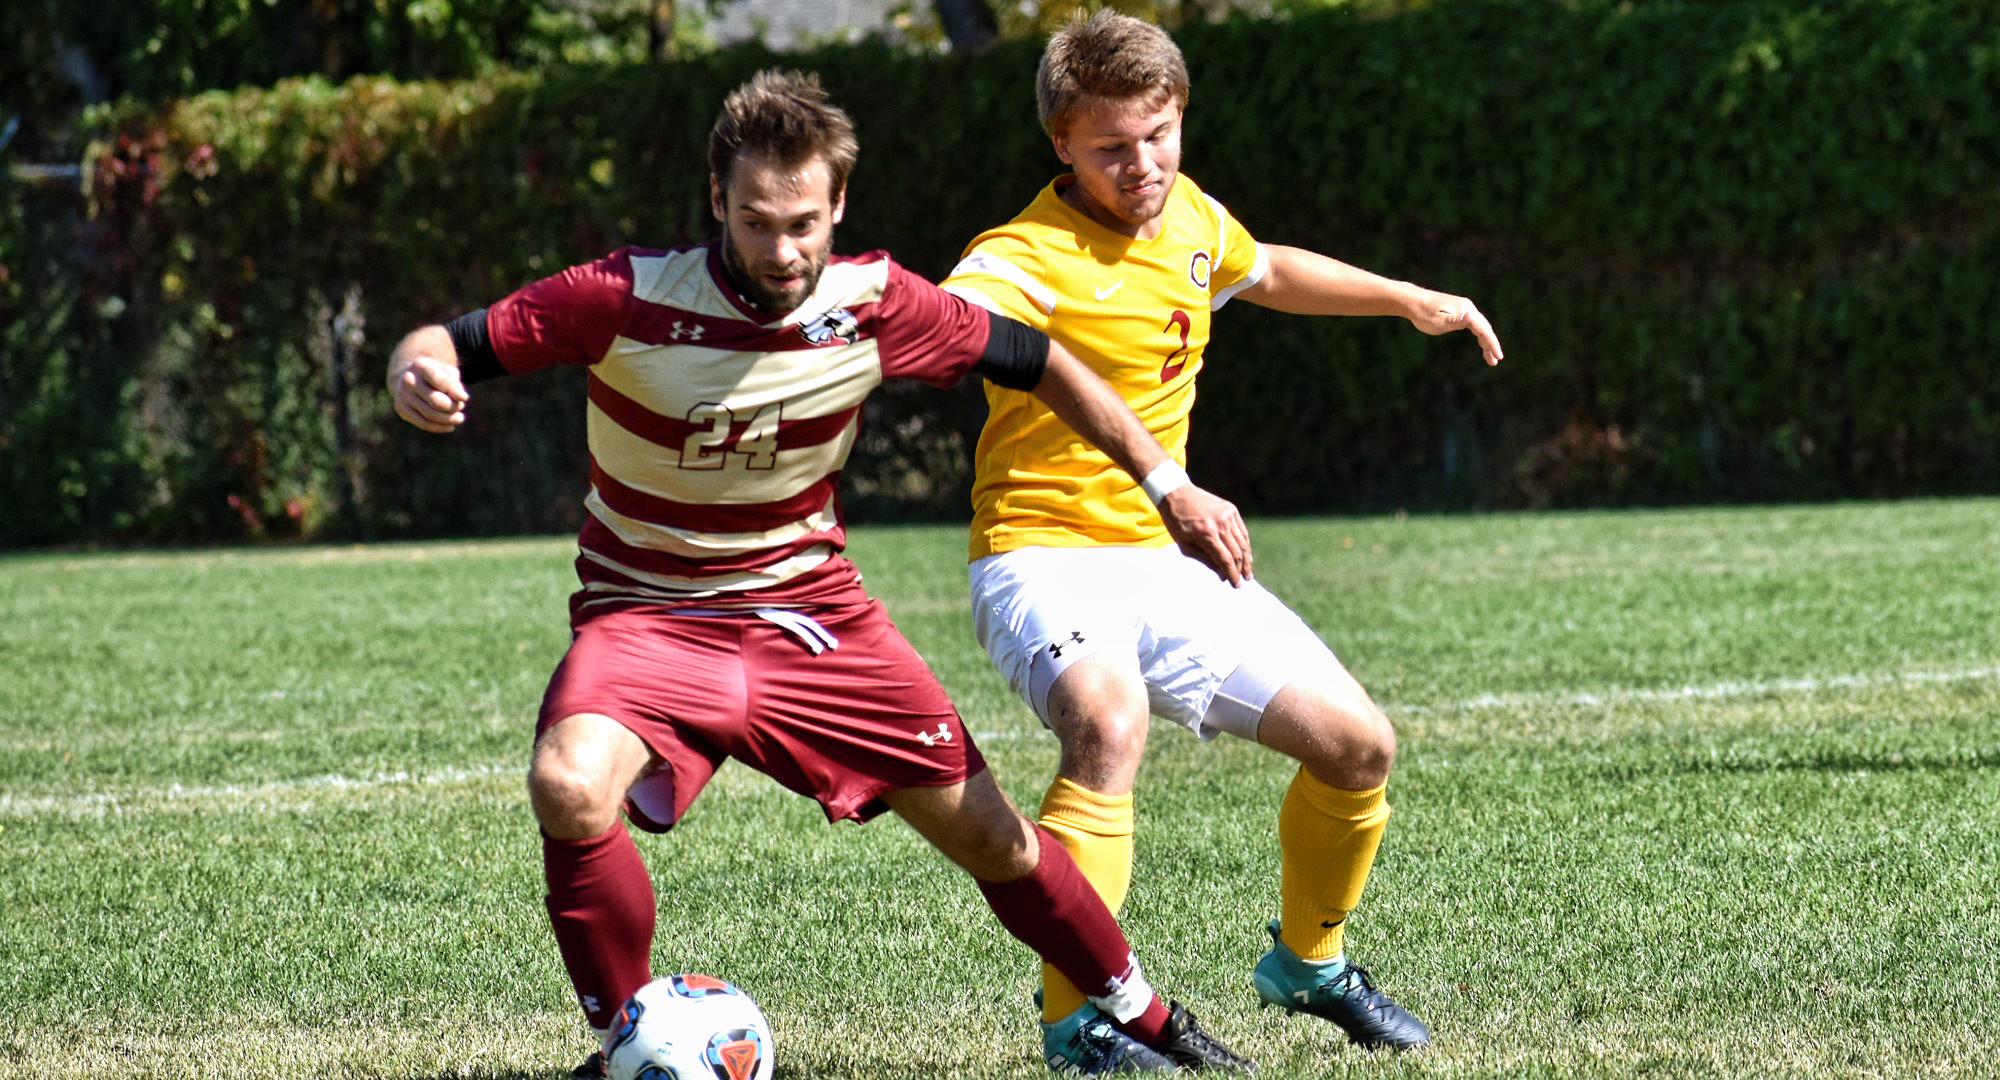 Junior Spencer Lancaster had the lone goal in the Cobbers 3-1 loss to No.21-ranked Macalester.